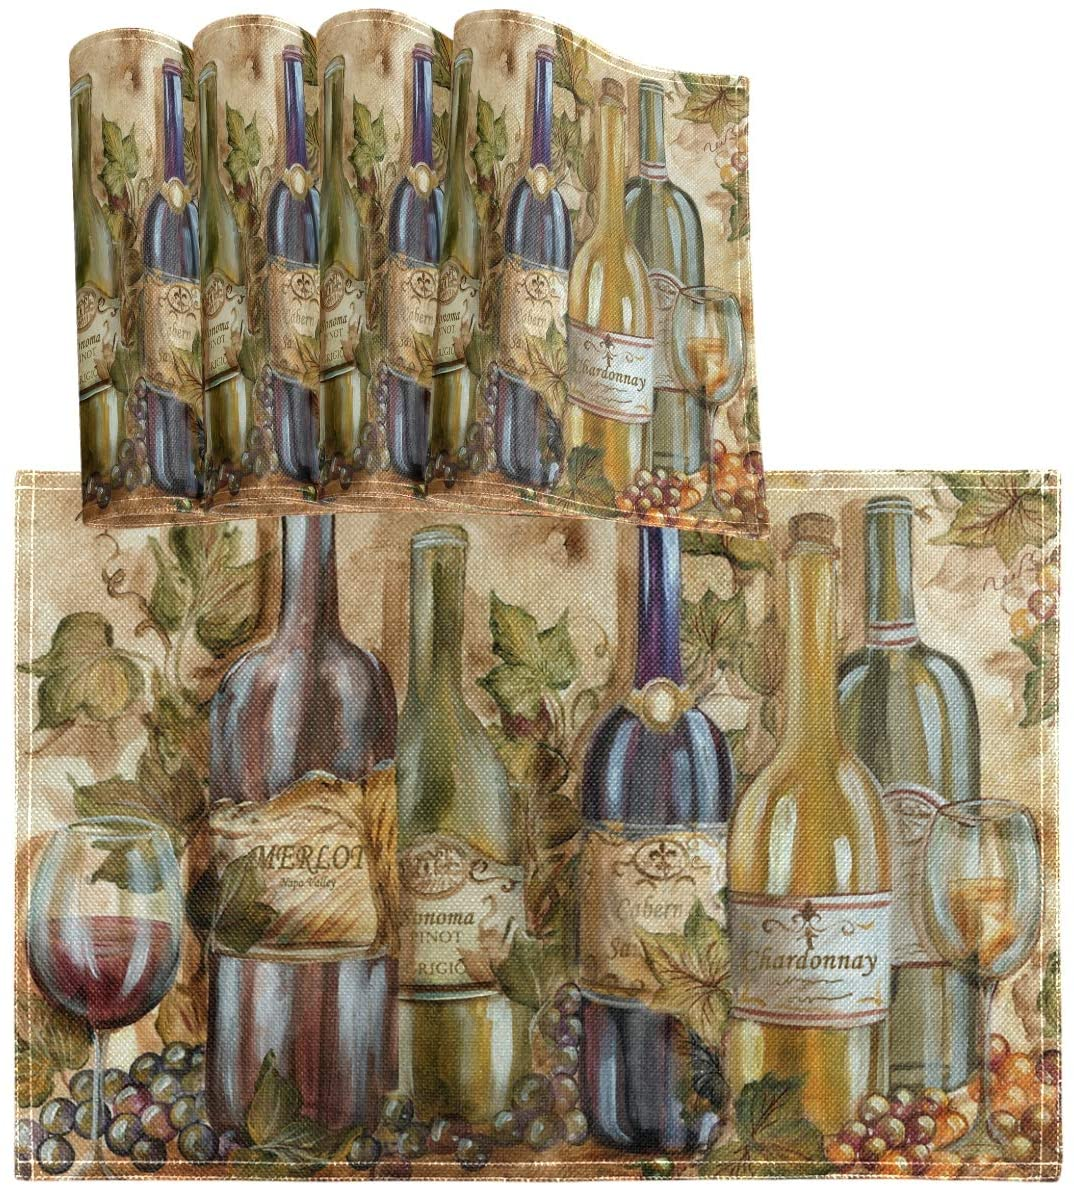 Oarencol Vintage Wine Glasses Placemat Table Mats Set of 4, Vineyard Colorful Painting Heat-Resistant Washable Clean Kitchen Place Mats for Dining Table Decoration